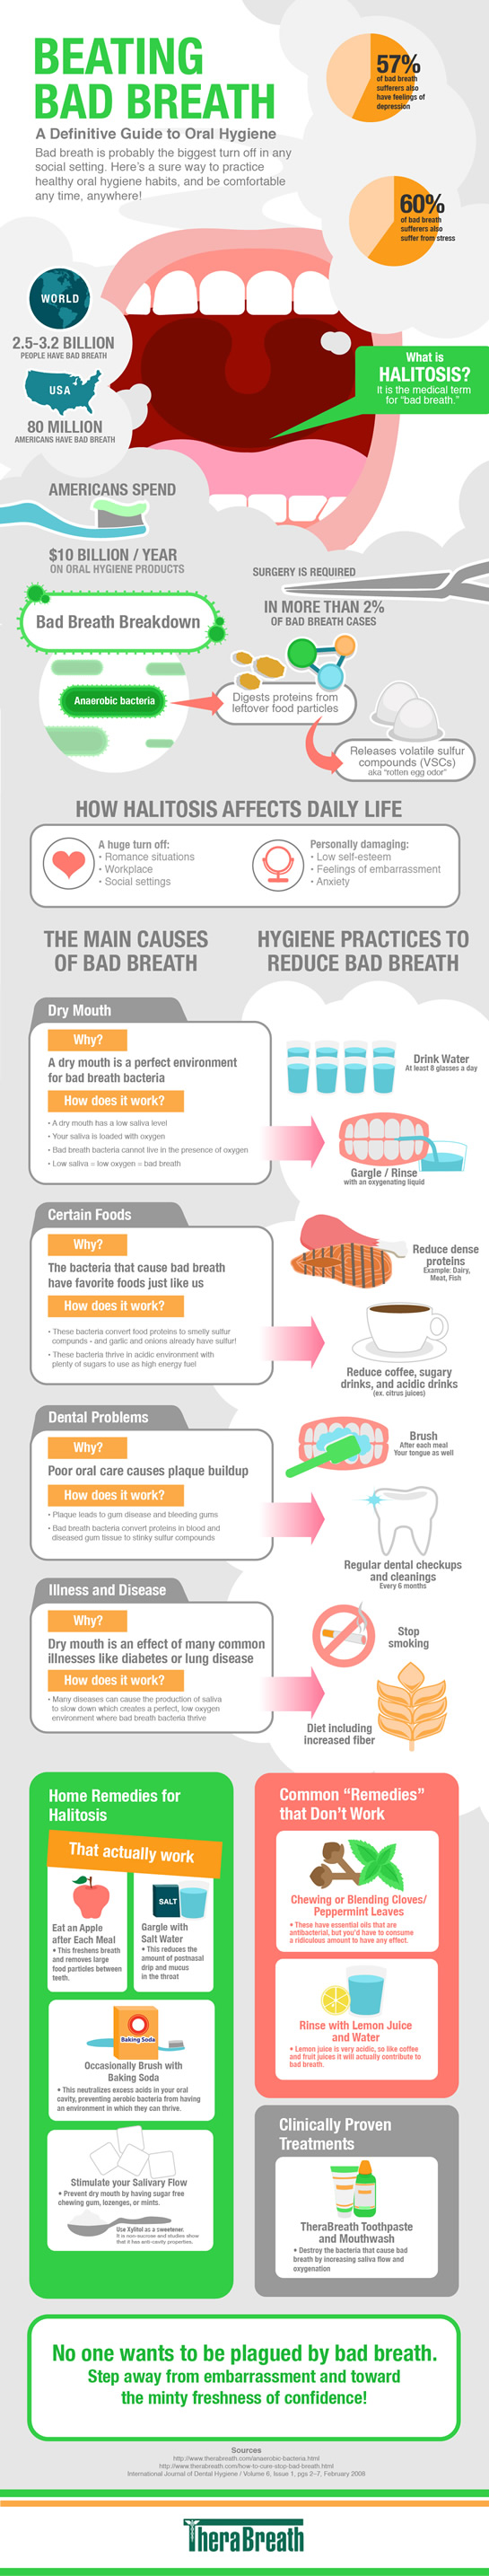 All About Halitosis: A Guide to Oral Hygiene and Killing Bad Breath - Infographic